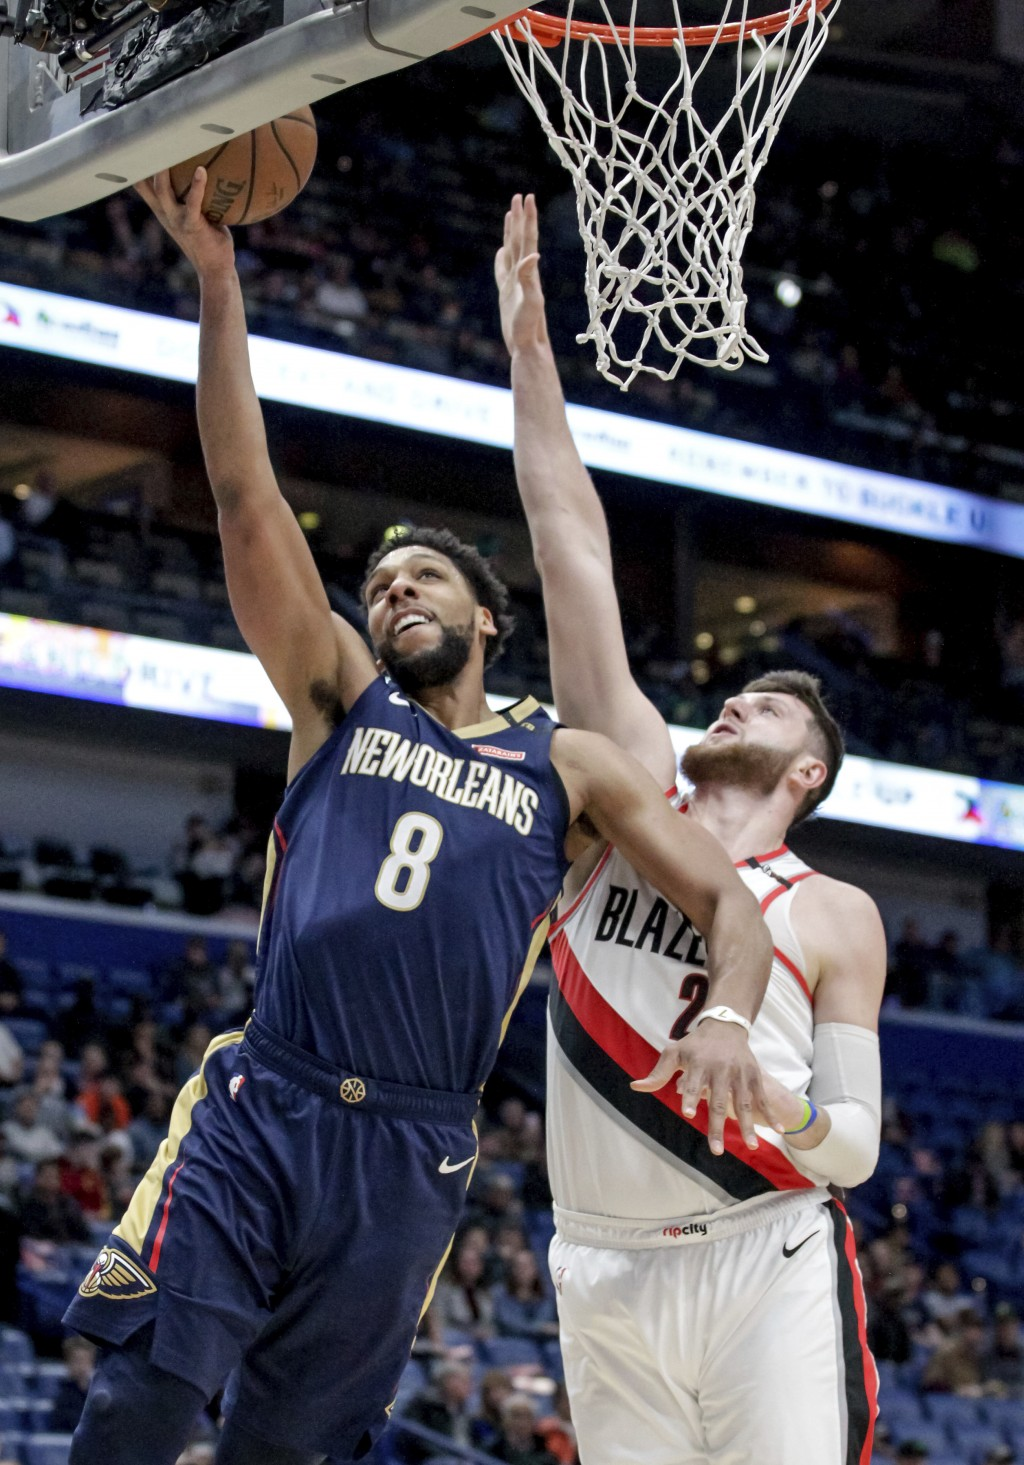 New Orleans Pelicans center Jahlil Okafor (8) scores over Portland Trail Blazers center Jusuf Nurkic (27) in the first half of an NBA basketball game